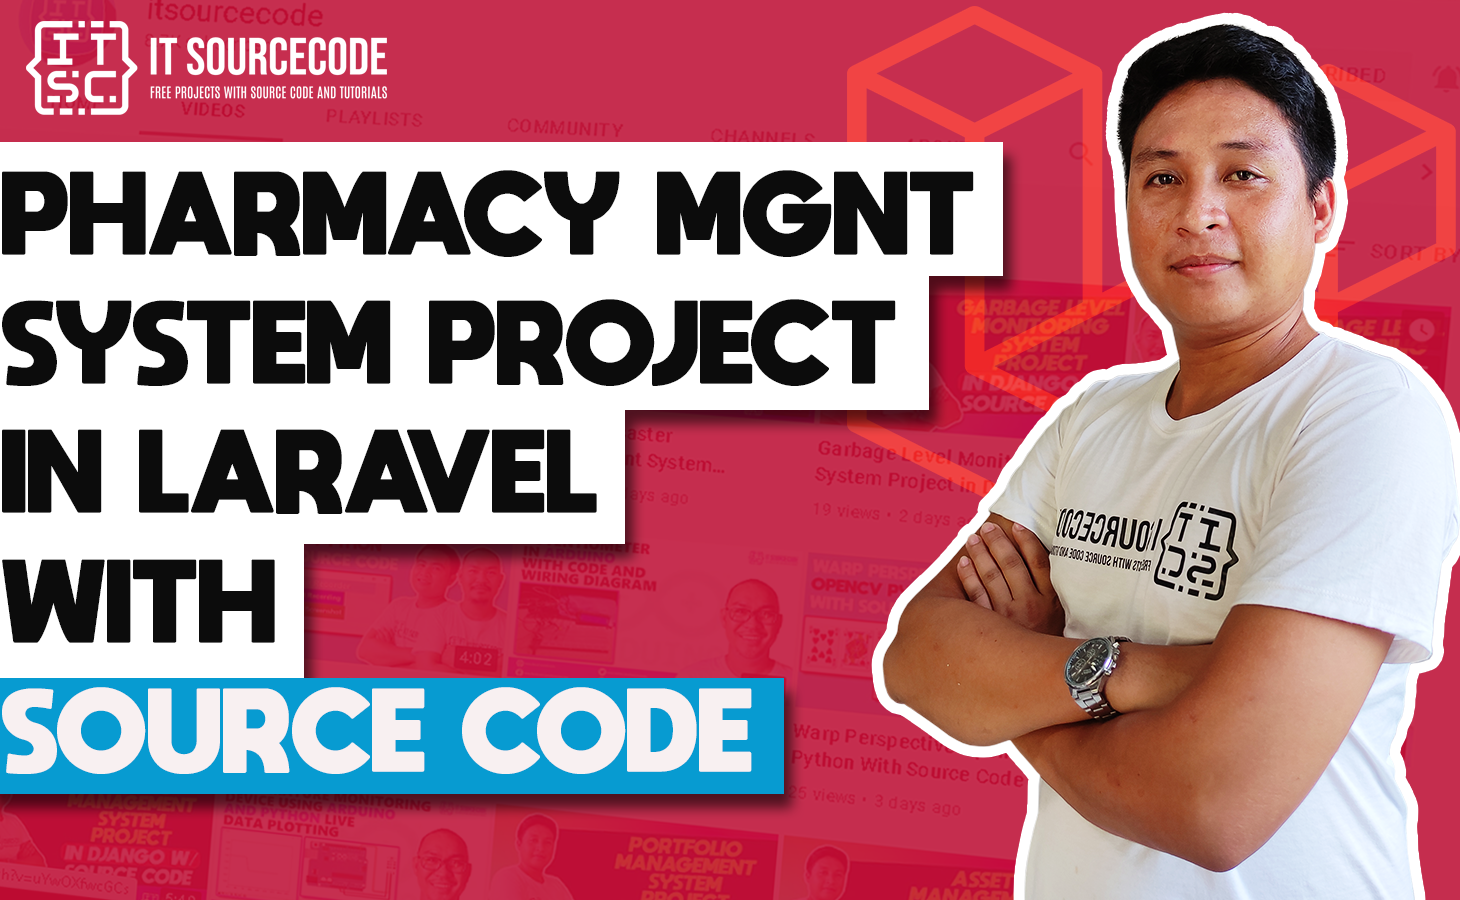 Pharmacy Management System Project in Laravel with Source Code